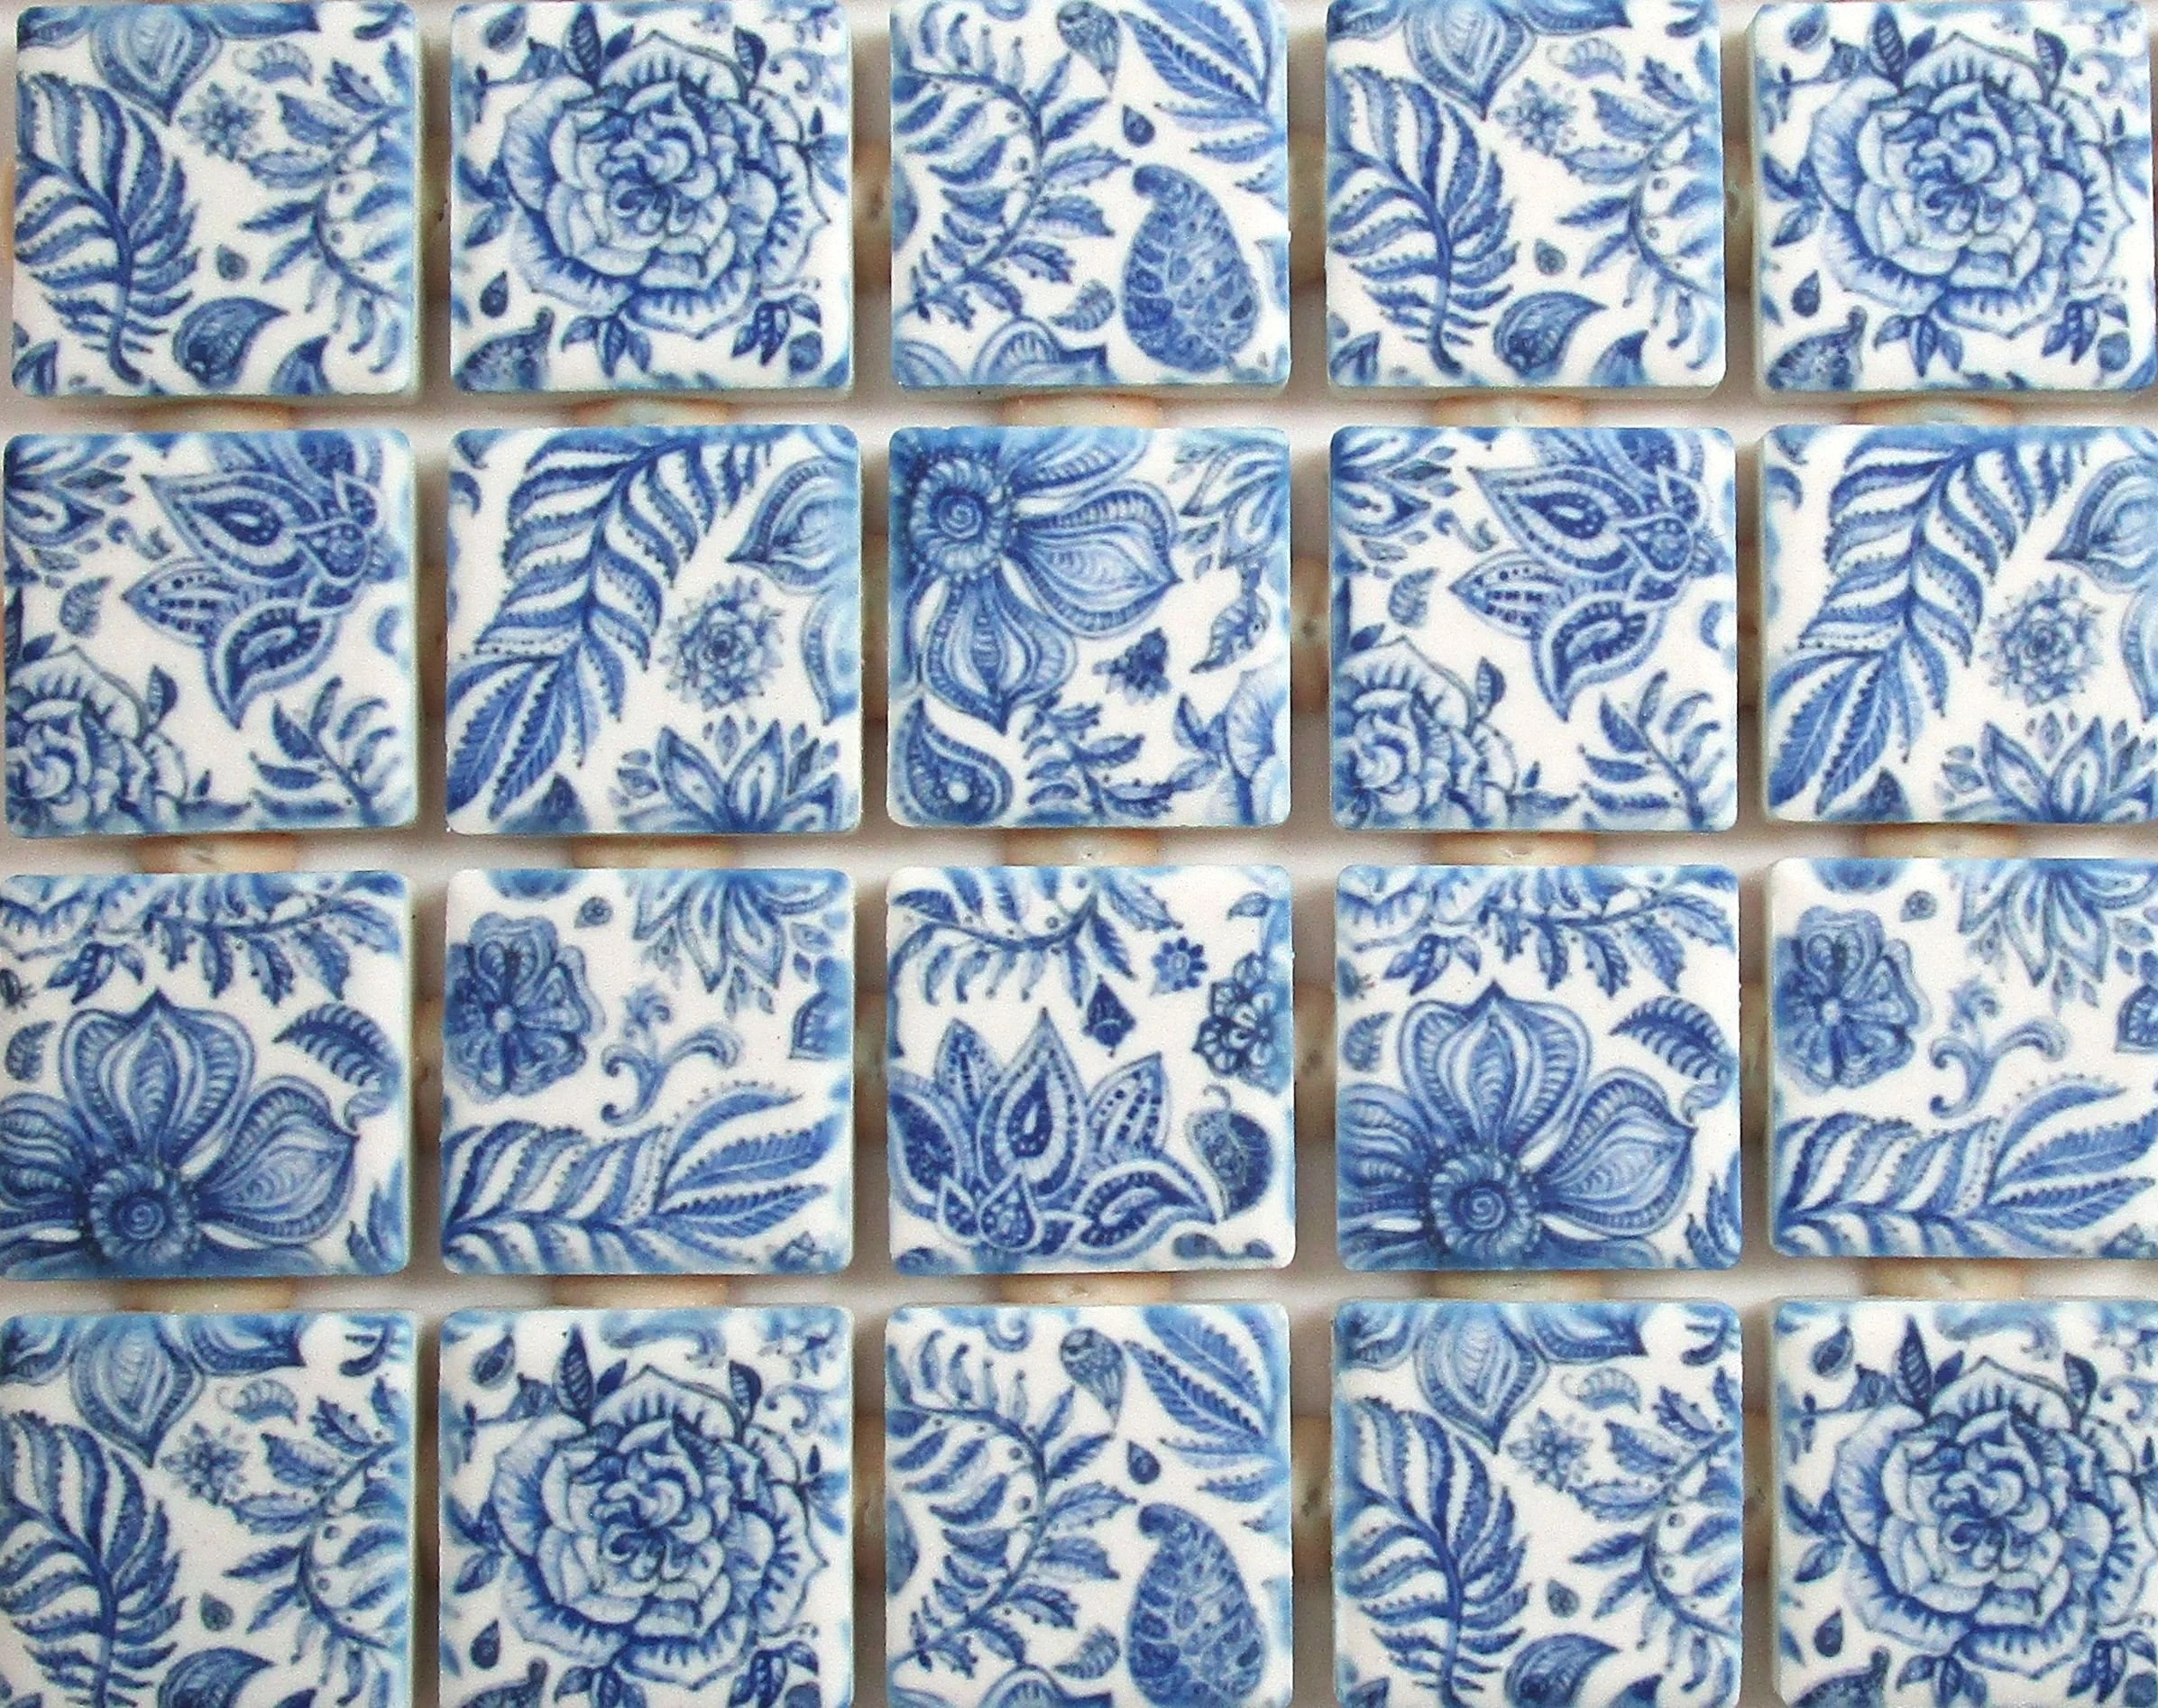 ceramic mosaic tiles blue and white flowers leaves floral mosaic tile pieces 36 pieces for mosaic art mixed media art jewelry